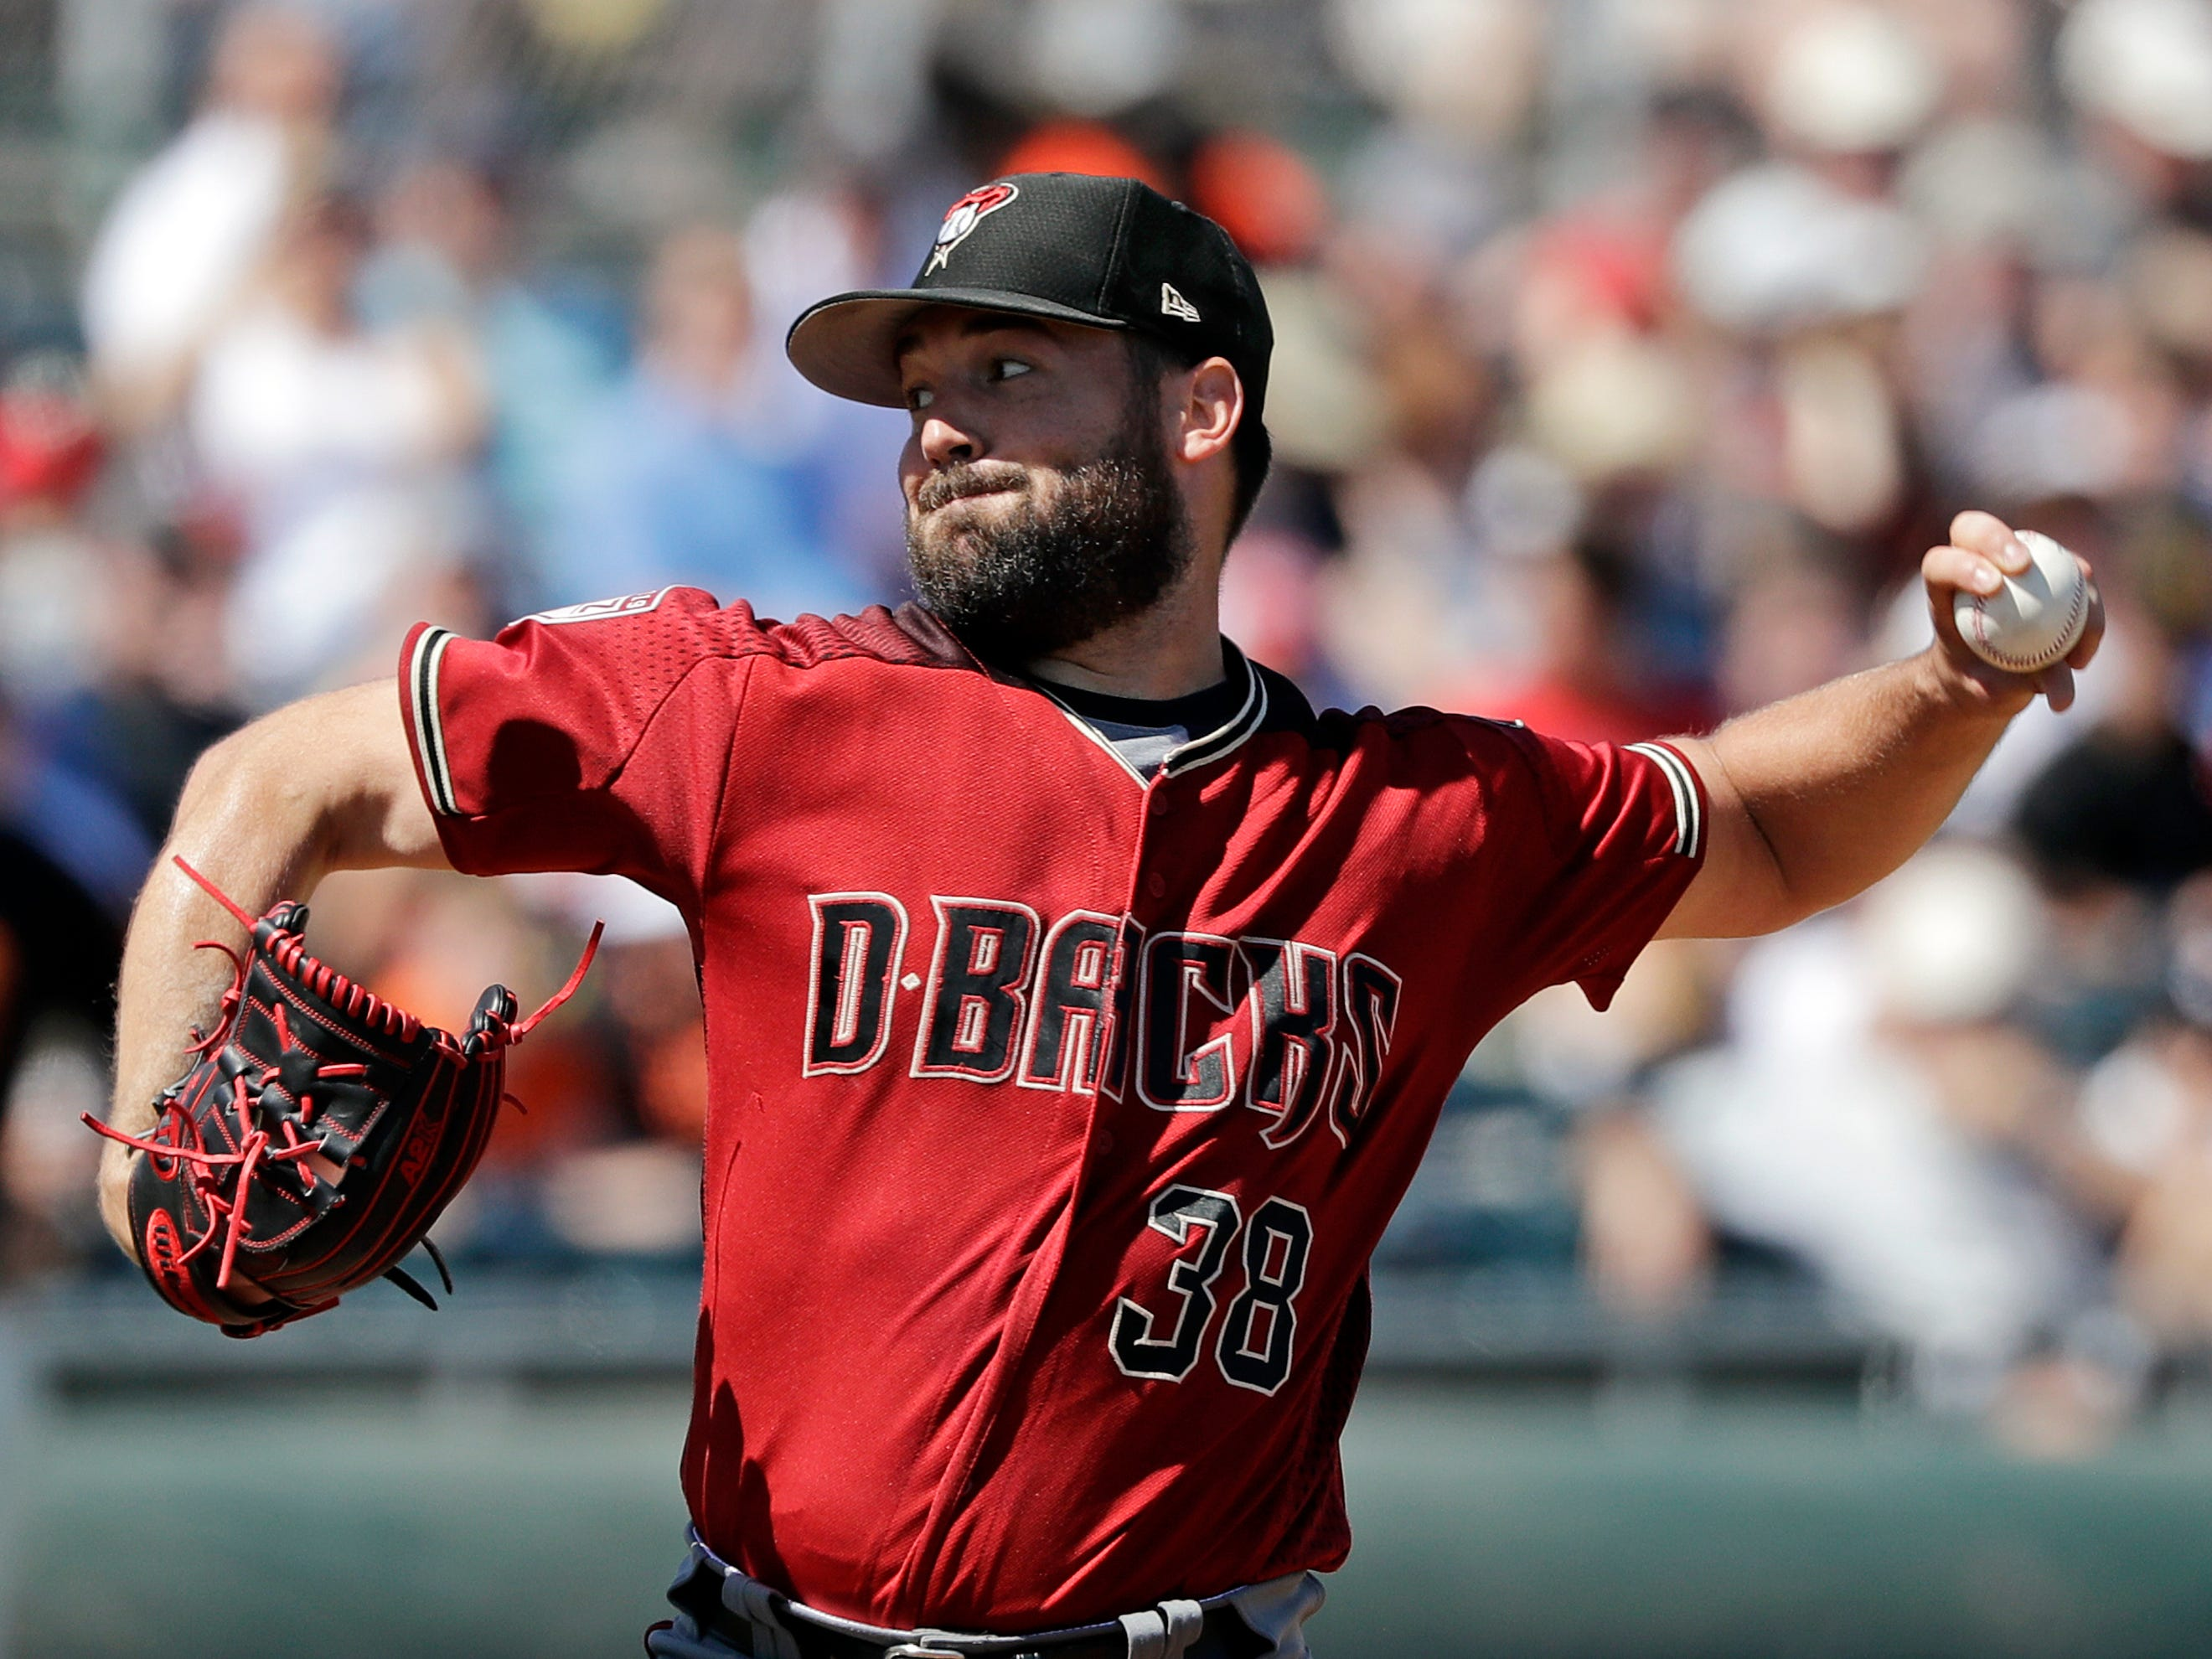 Arizona Diamondbacks starting pitcher Robbie Ray throws against the San Francisco Giants in the second inning of a spring training baseball game Saturday, March 23, 2019, in Scottsdale, Ariz.